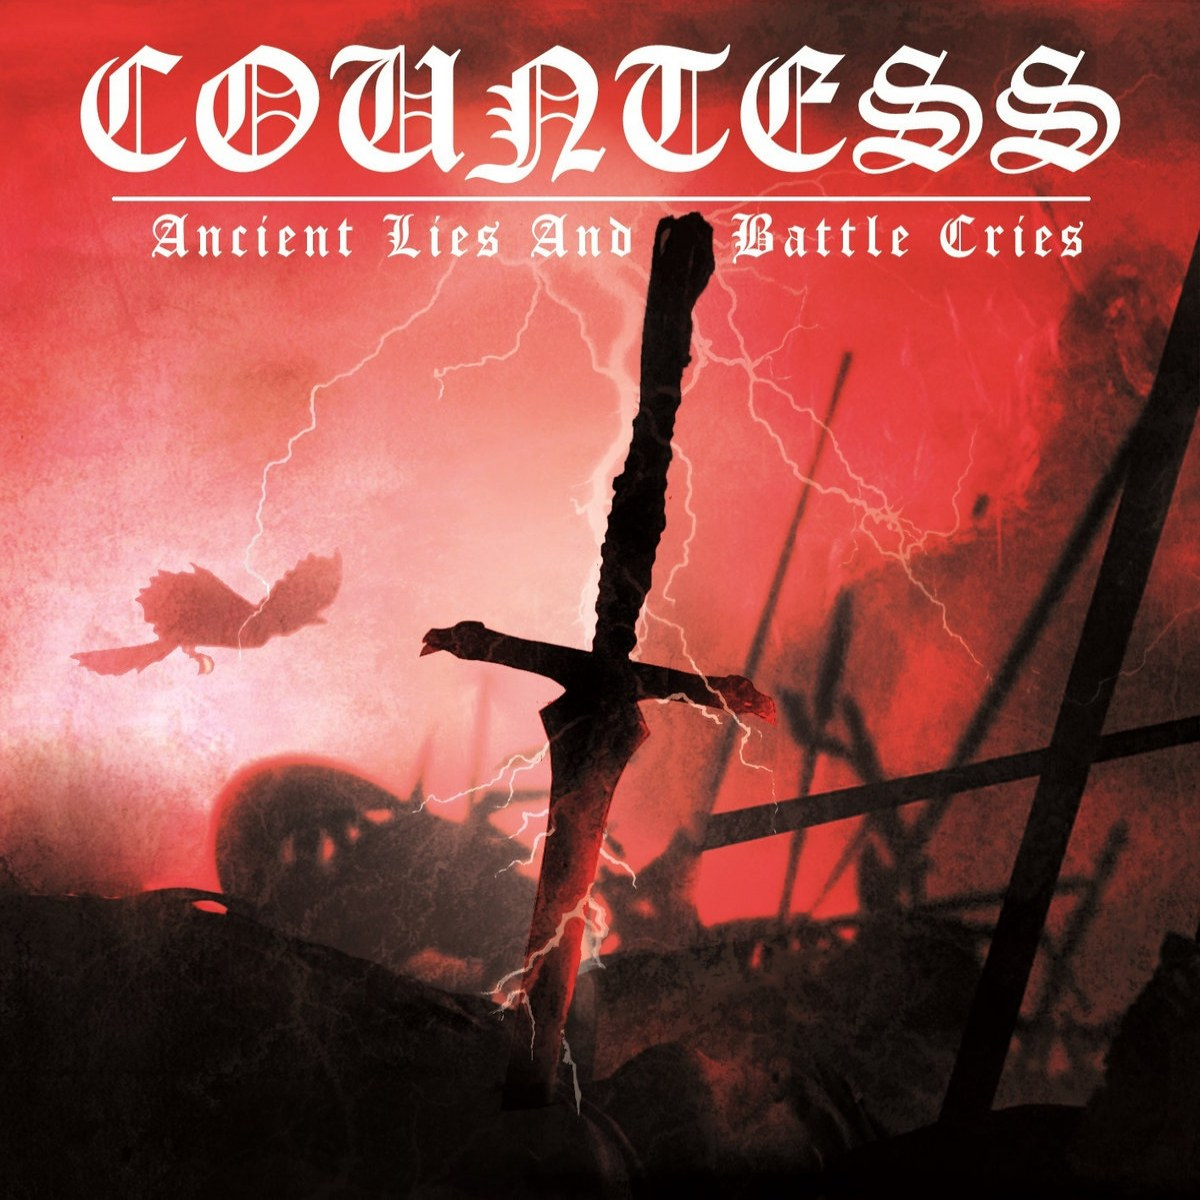 Review for Countess (NLD) - Ancient Lies and Battle Cries